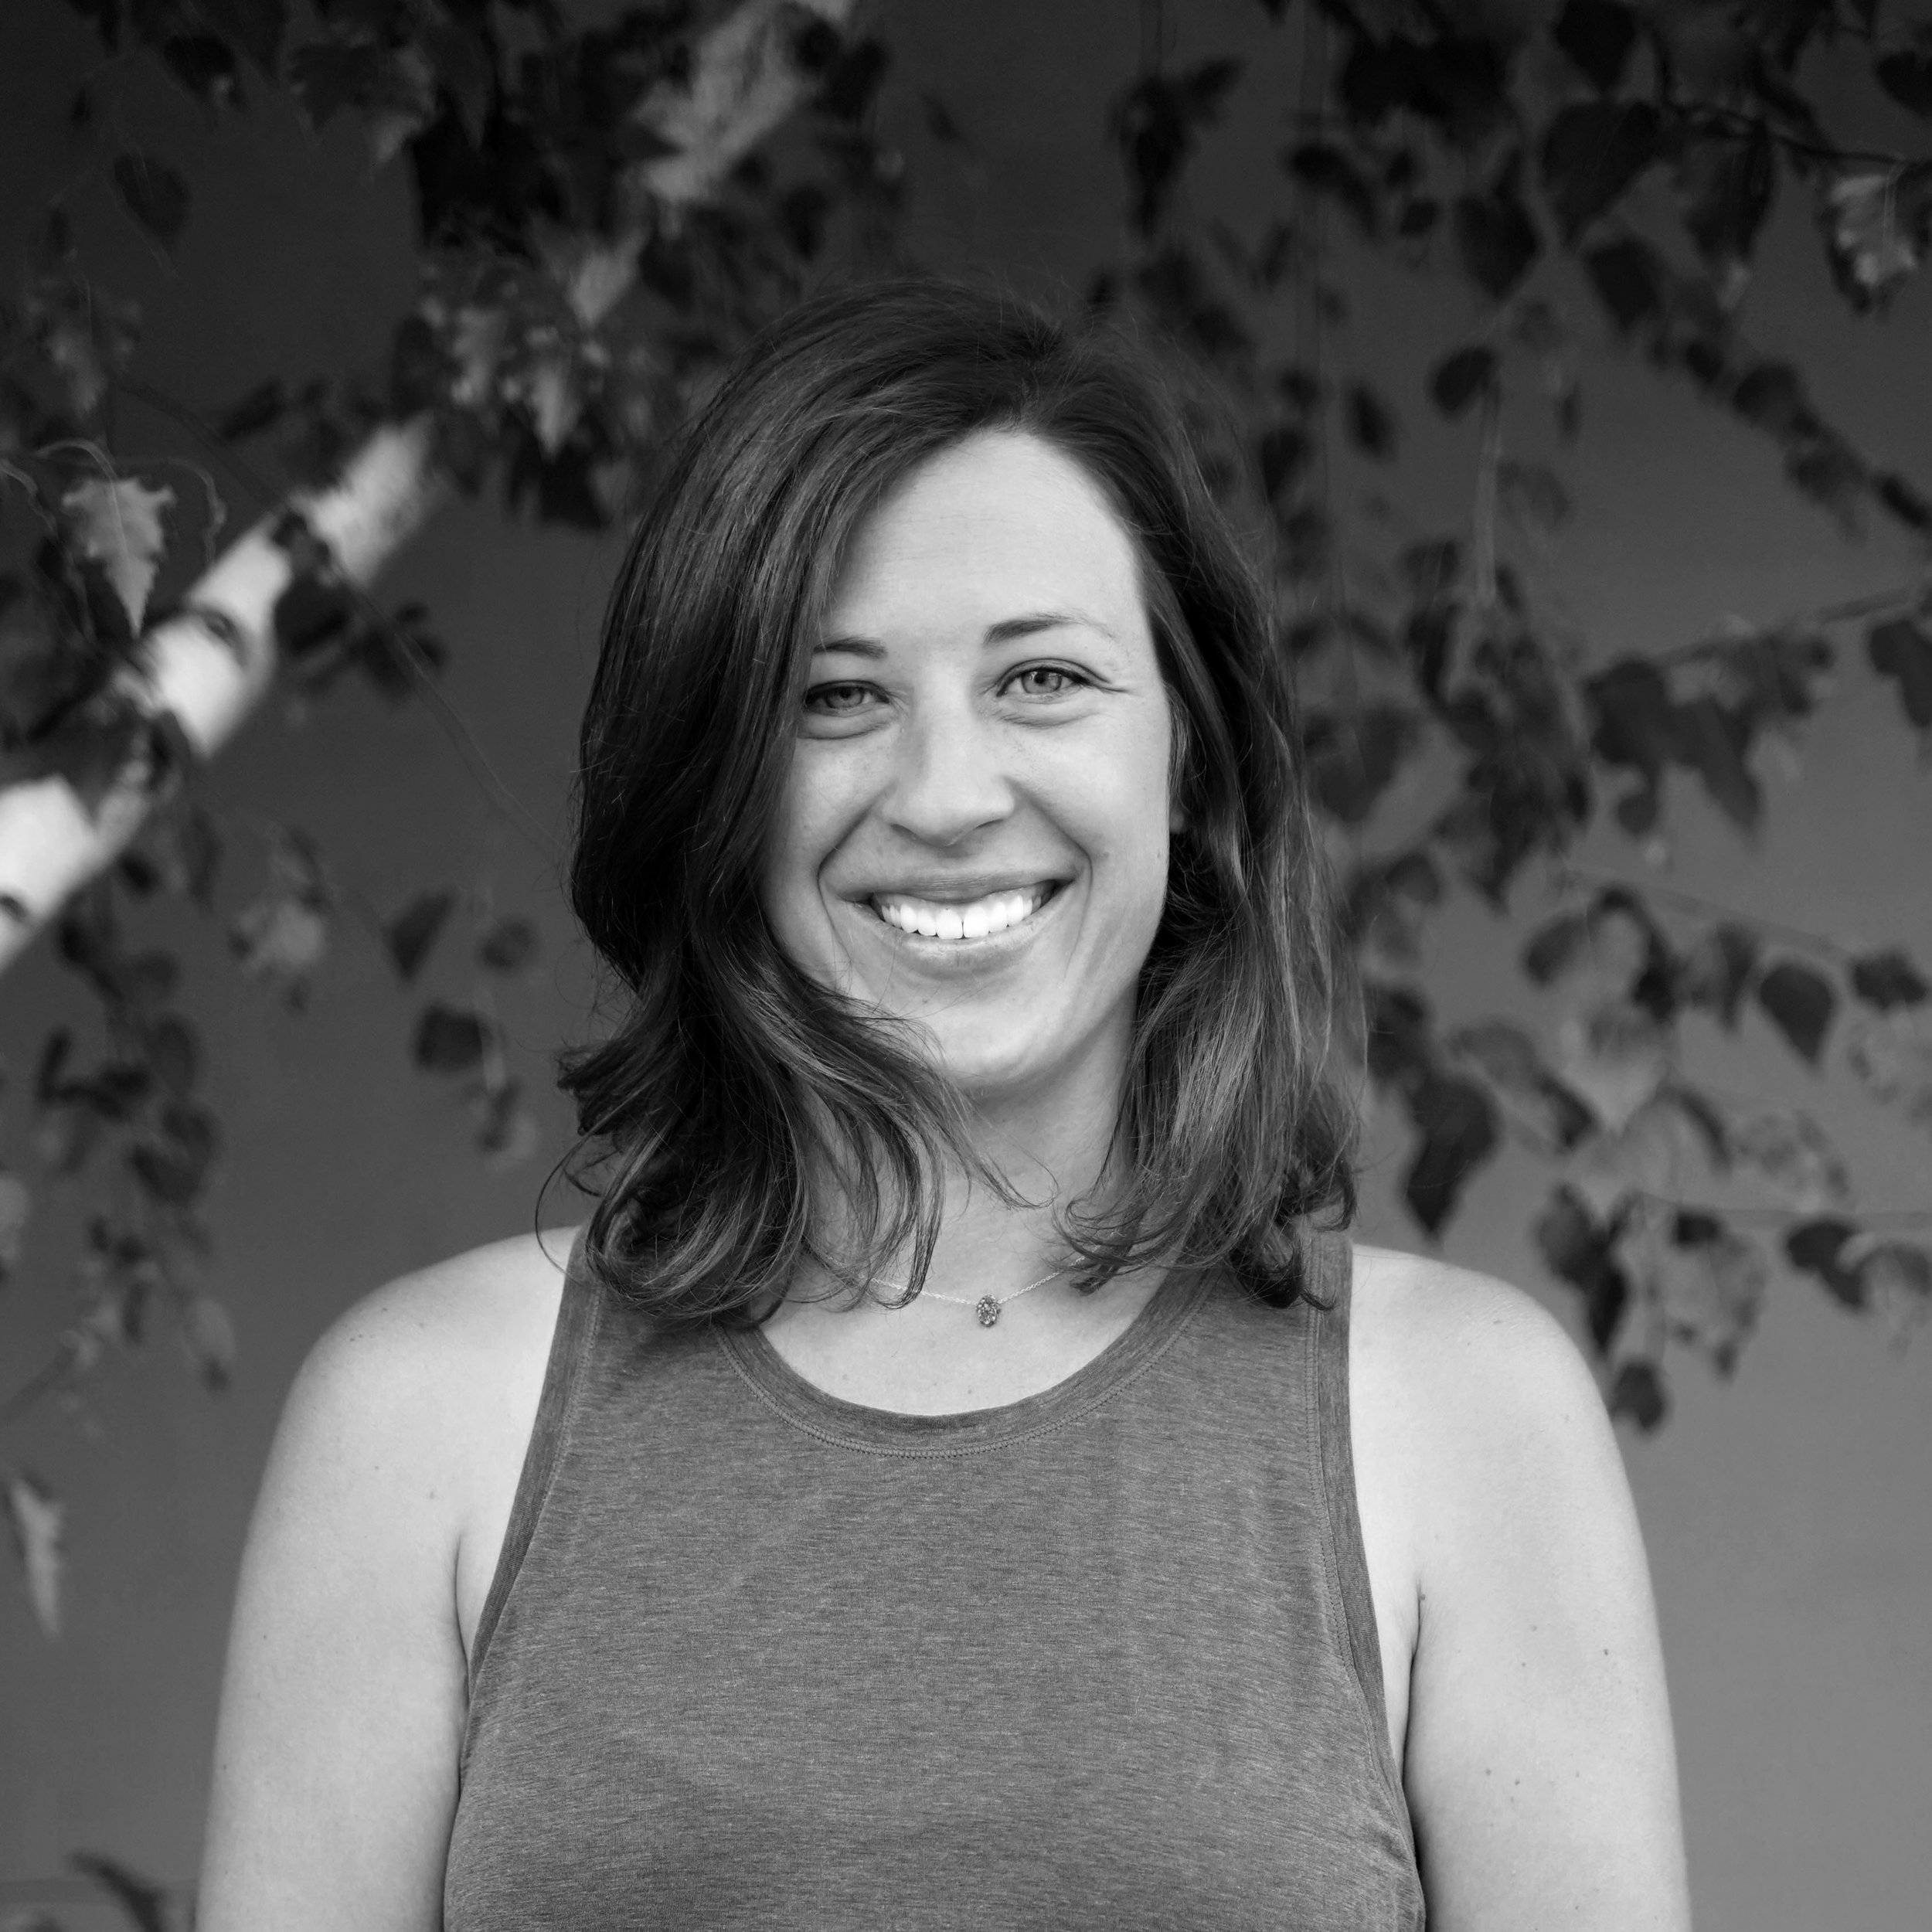 lauren spahn   Lauren's classes are non-heated, but expect to find your own inner heat in her beginner-friendly all-levels flows.  Read more…